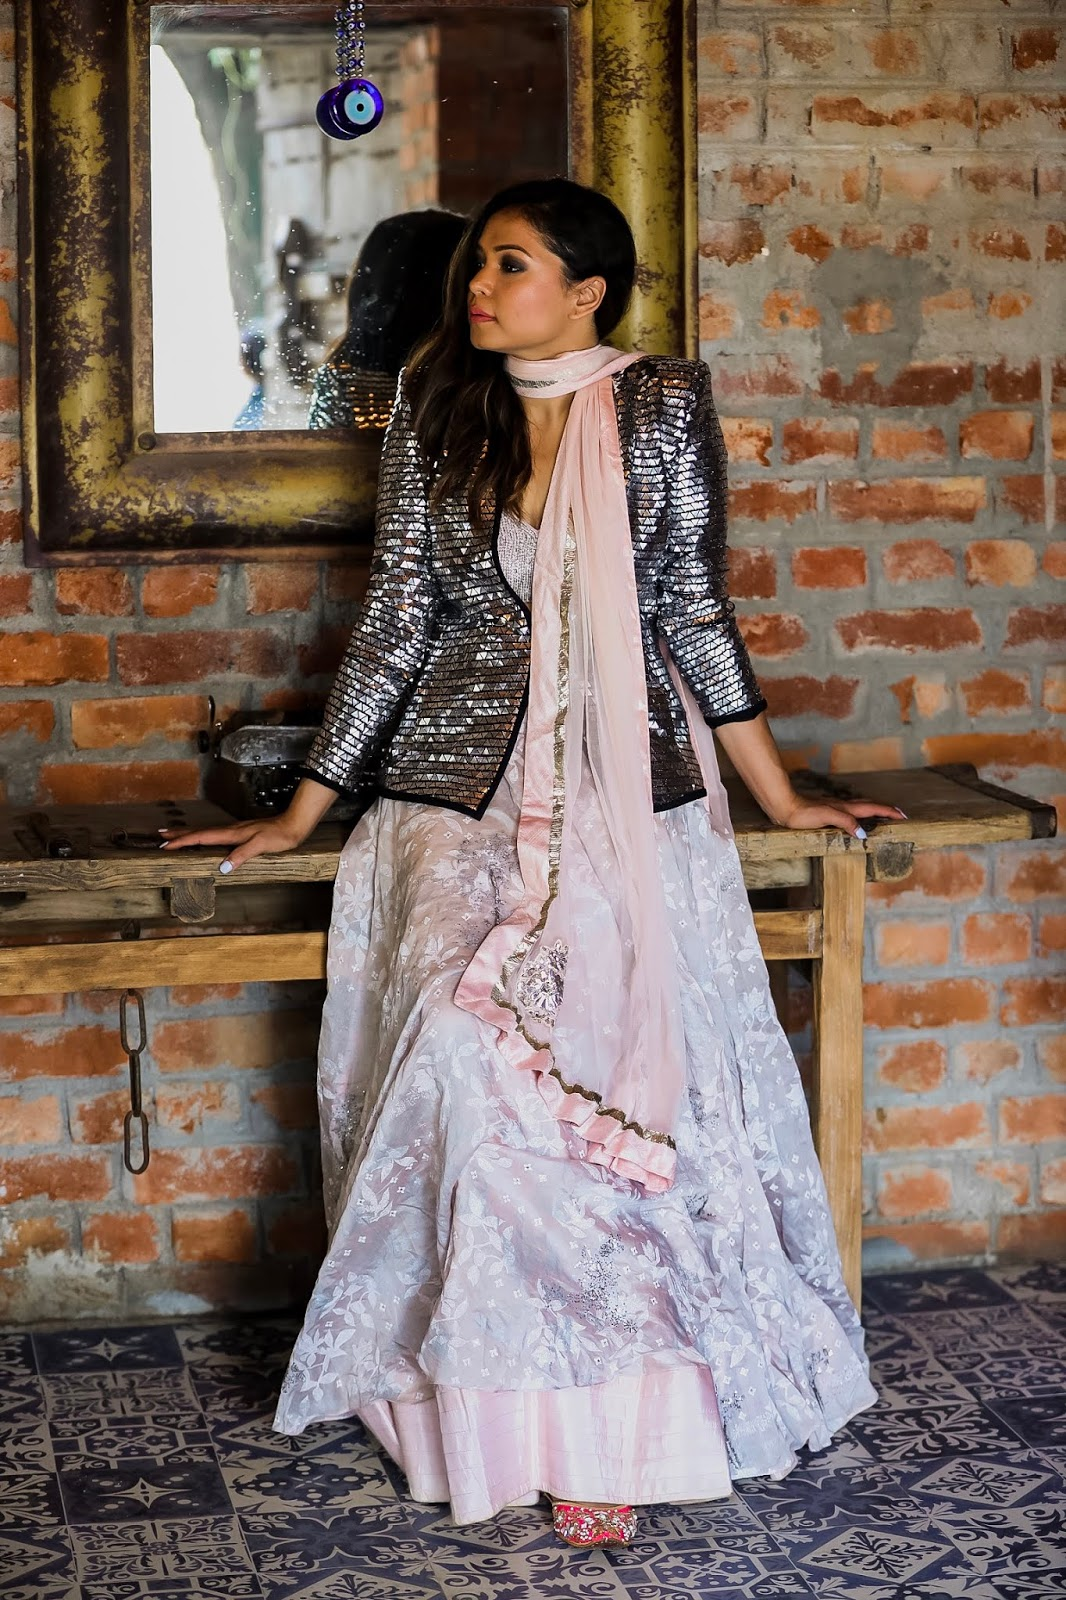 fusion outfit, indian fashion blogger, indian wedding outfit, sequin blazer, lehnga pastel, party outfit, myriad musings, saumya shiohare